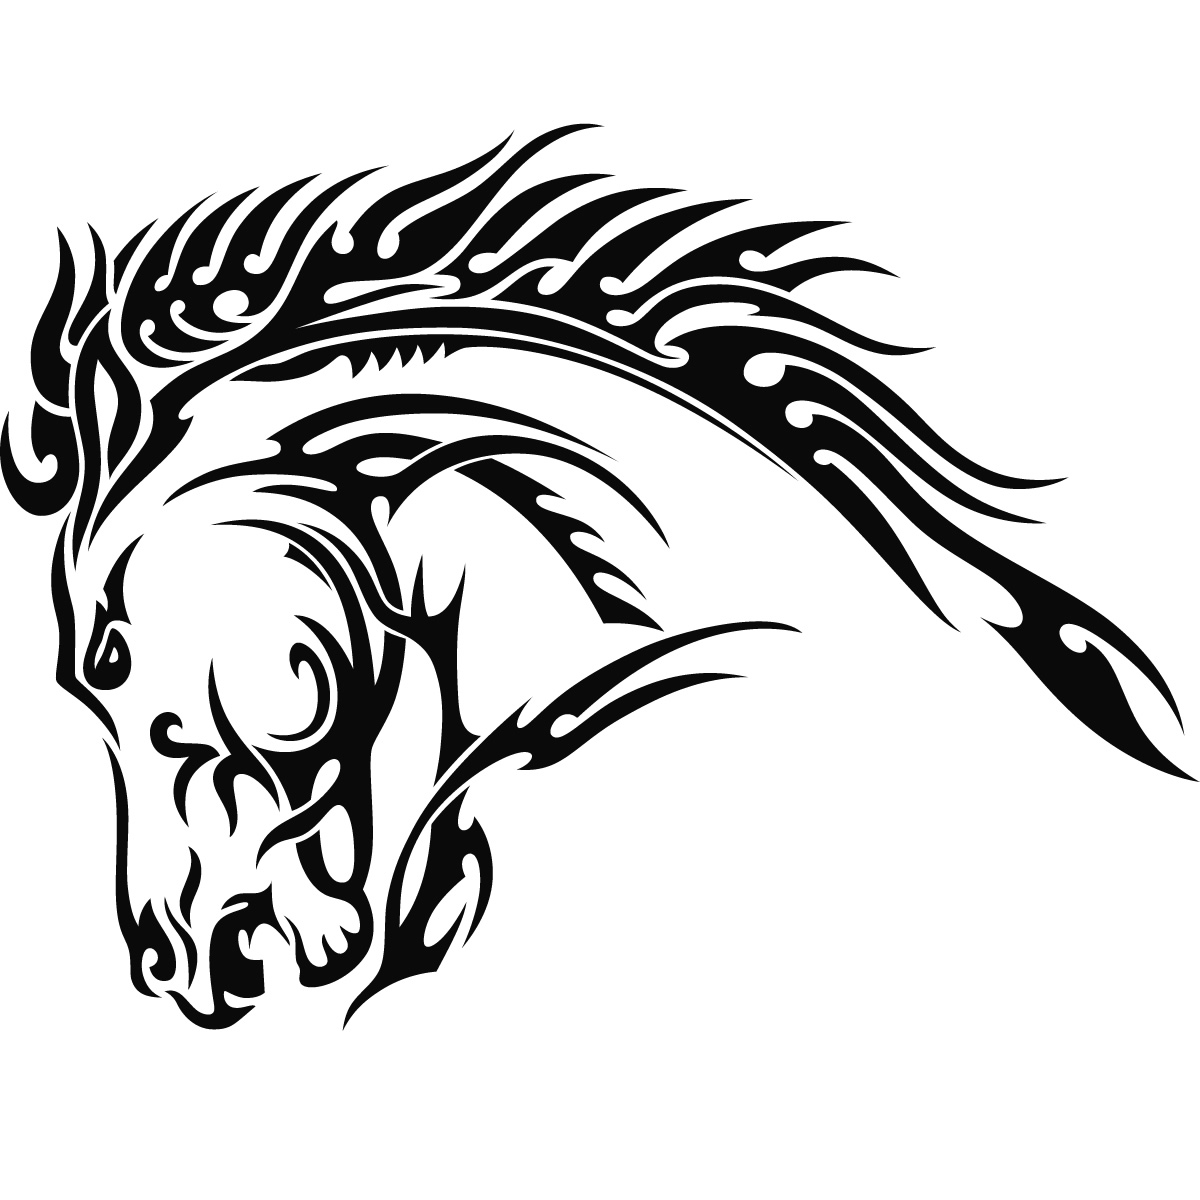 fire horse tattoo pattern tattoology tattoo. Black Bedroom Furniture Sets. Home Design Ideas